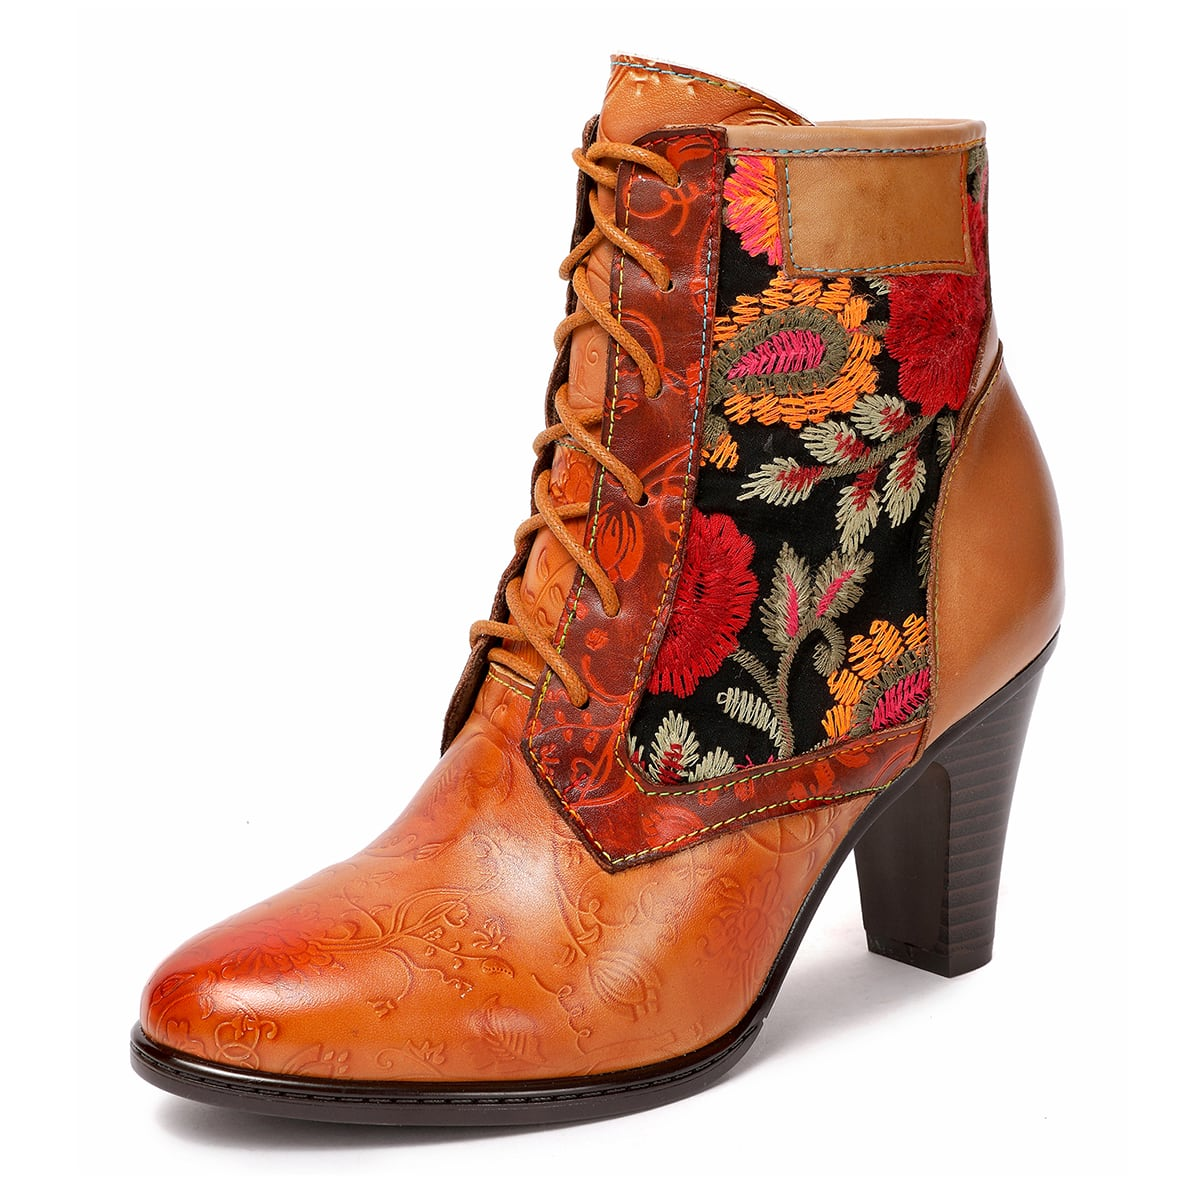 Floral Embroidery Leather Chunky Boots